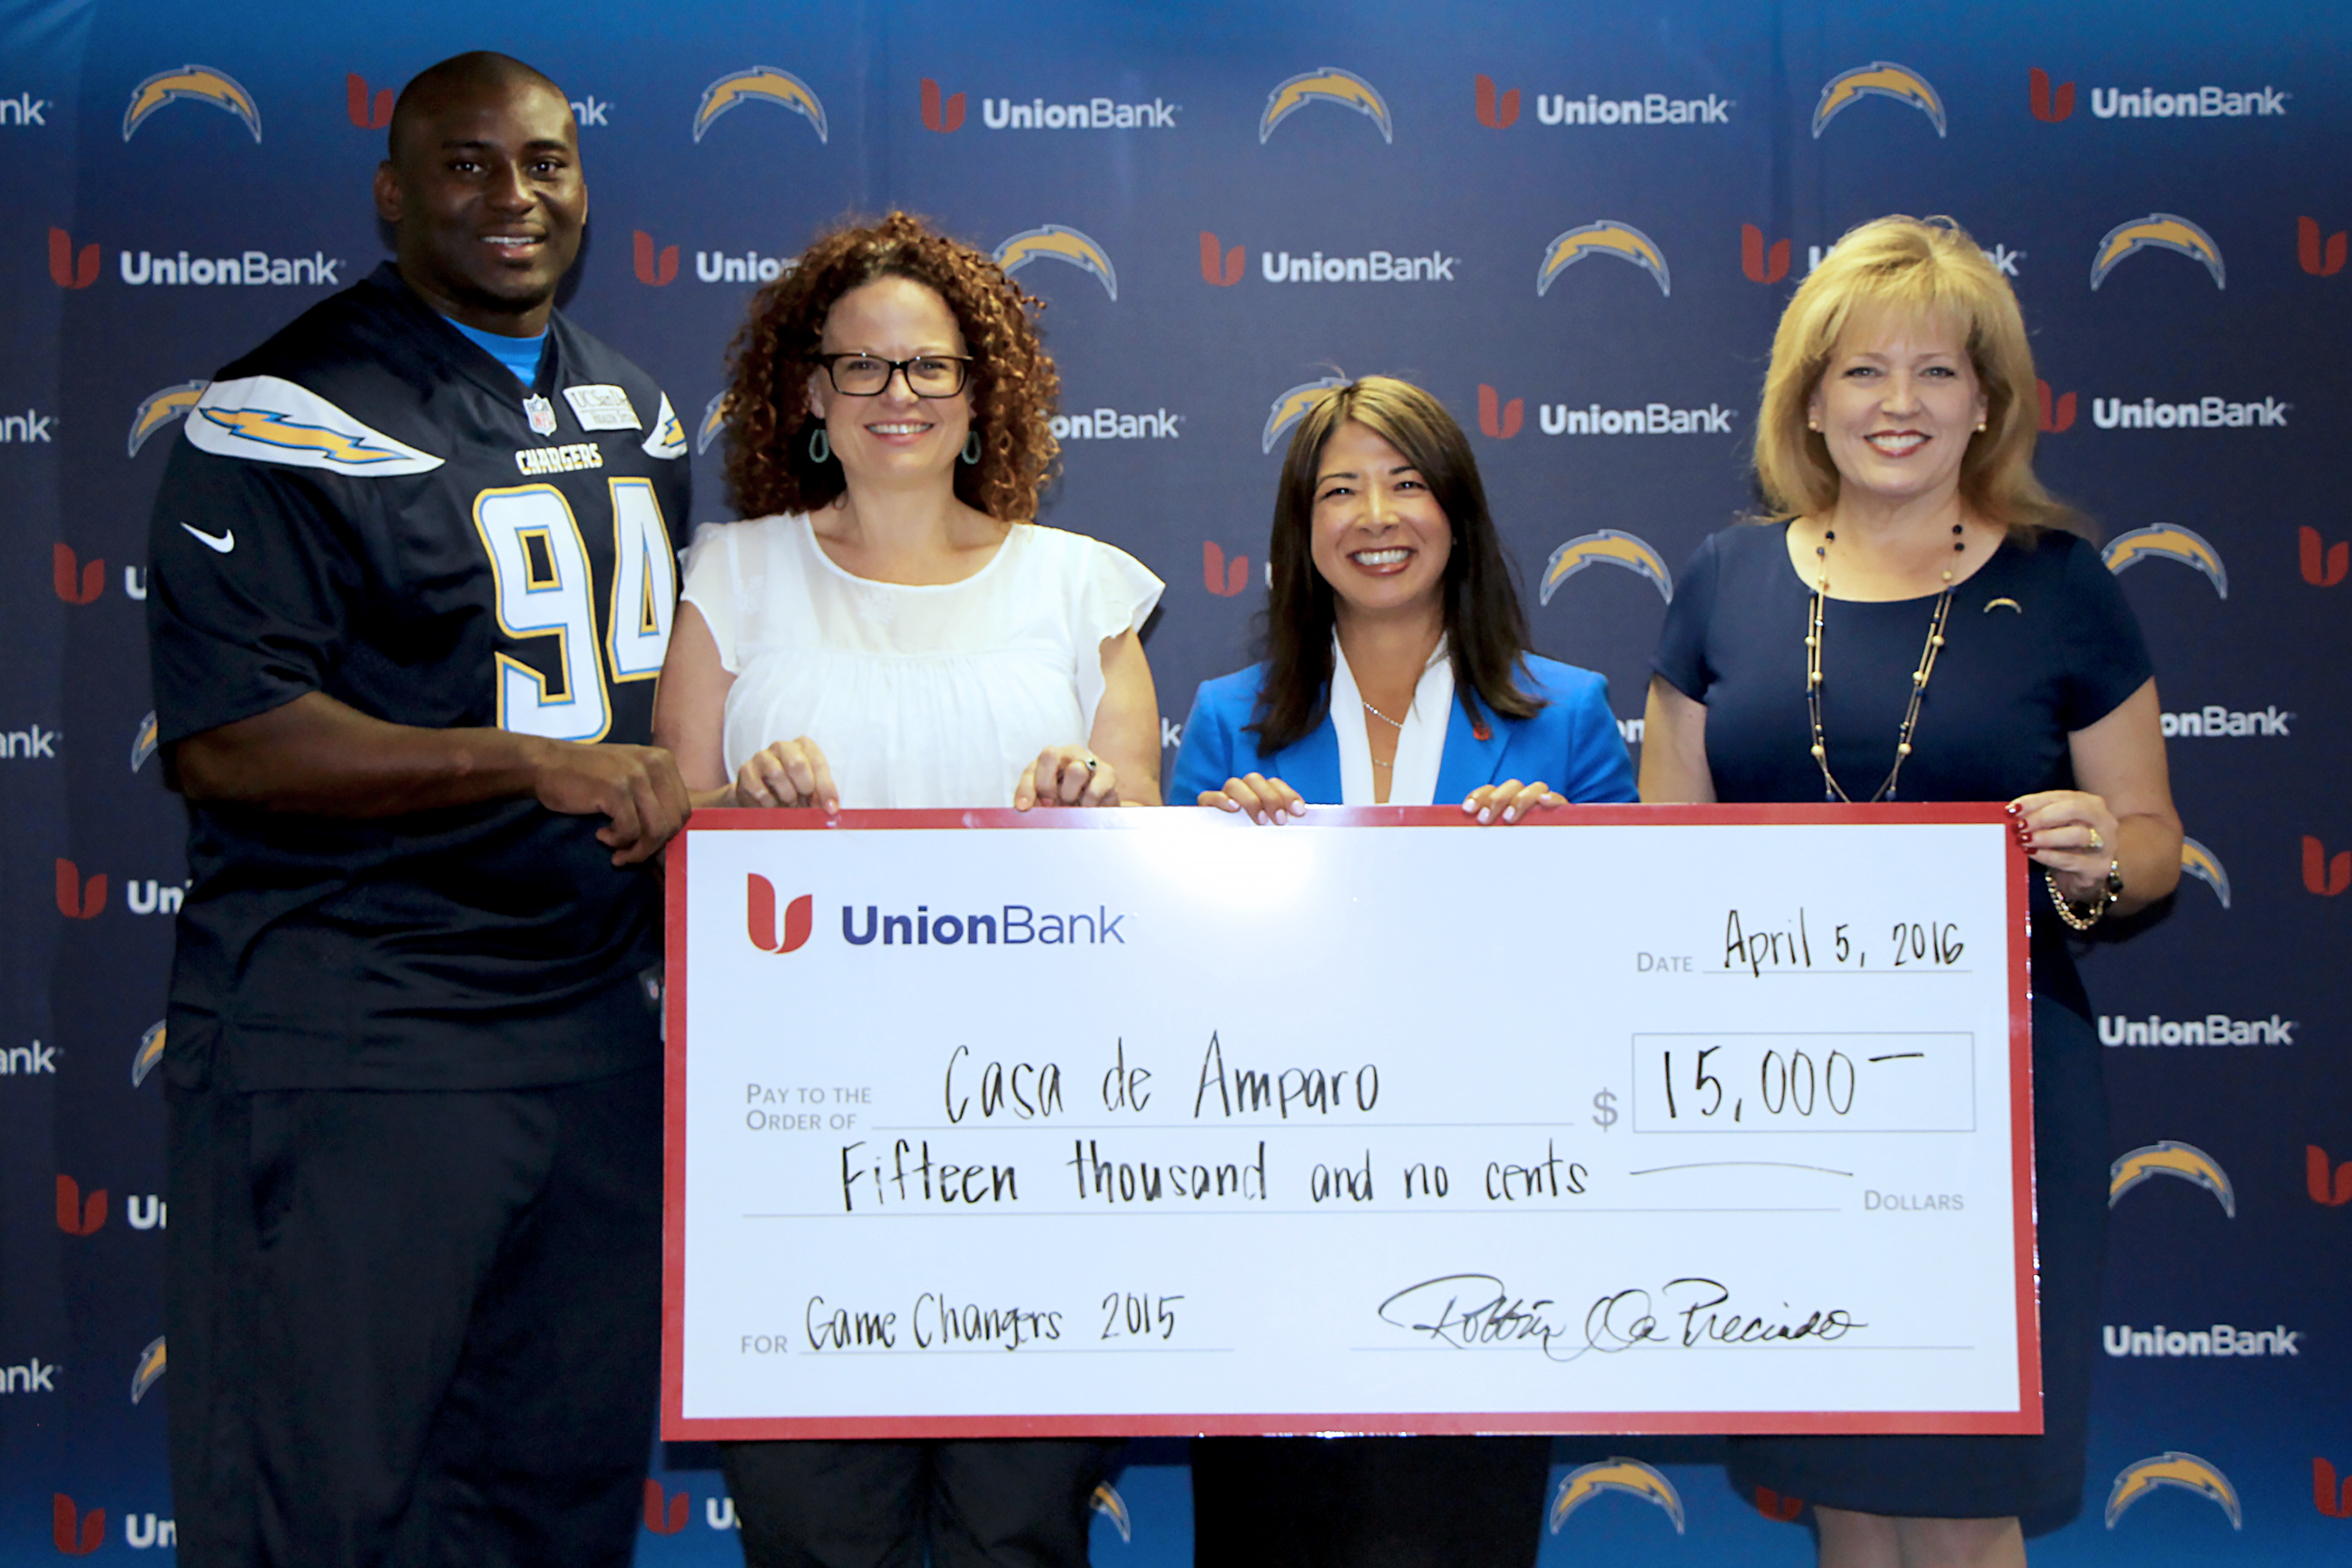 Union Bank and San Diego Chargers Donate $15 000 to Casa de Amparo